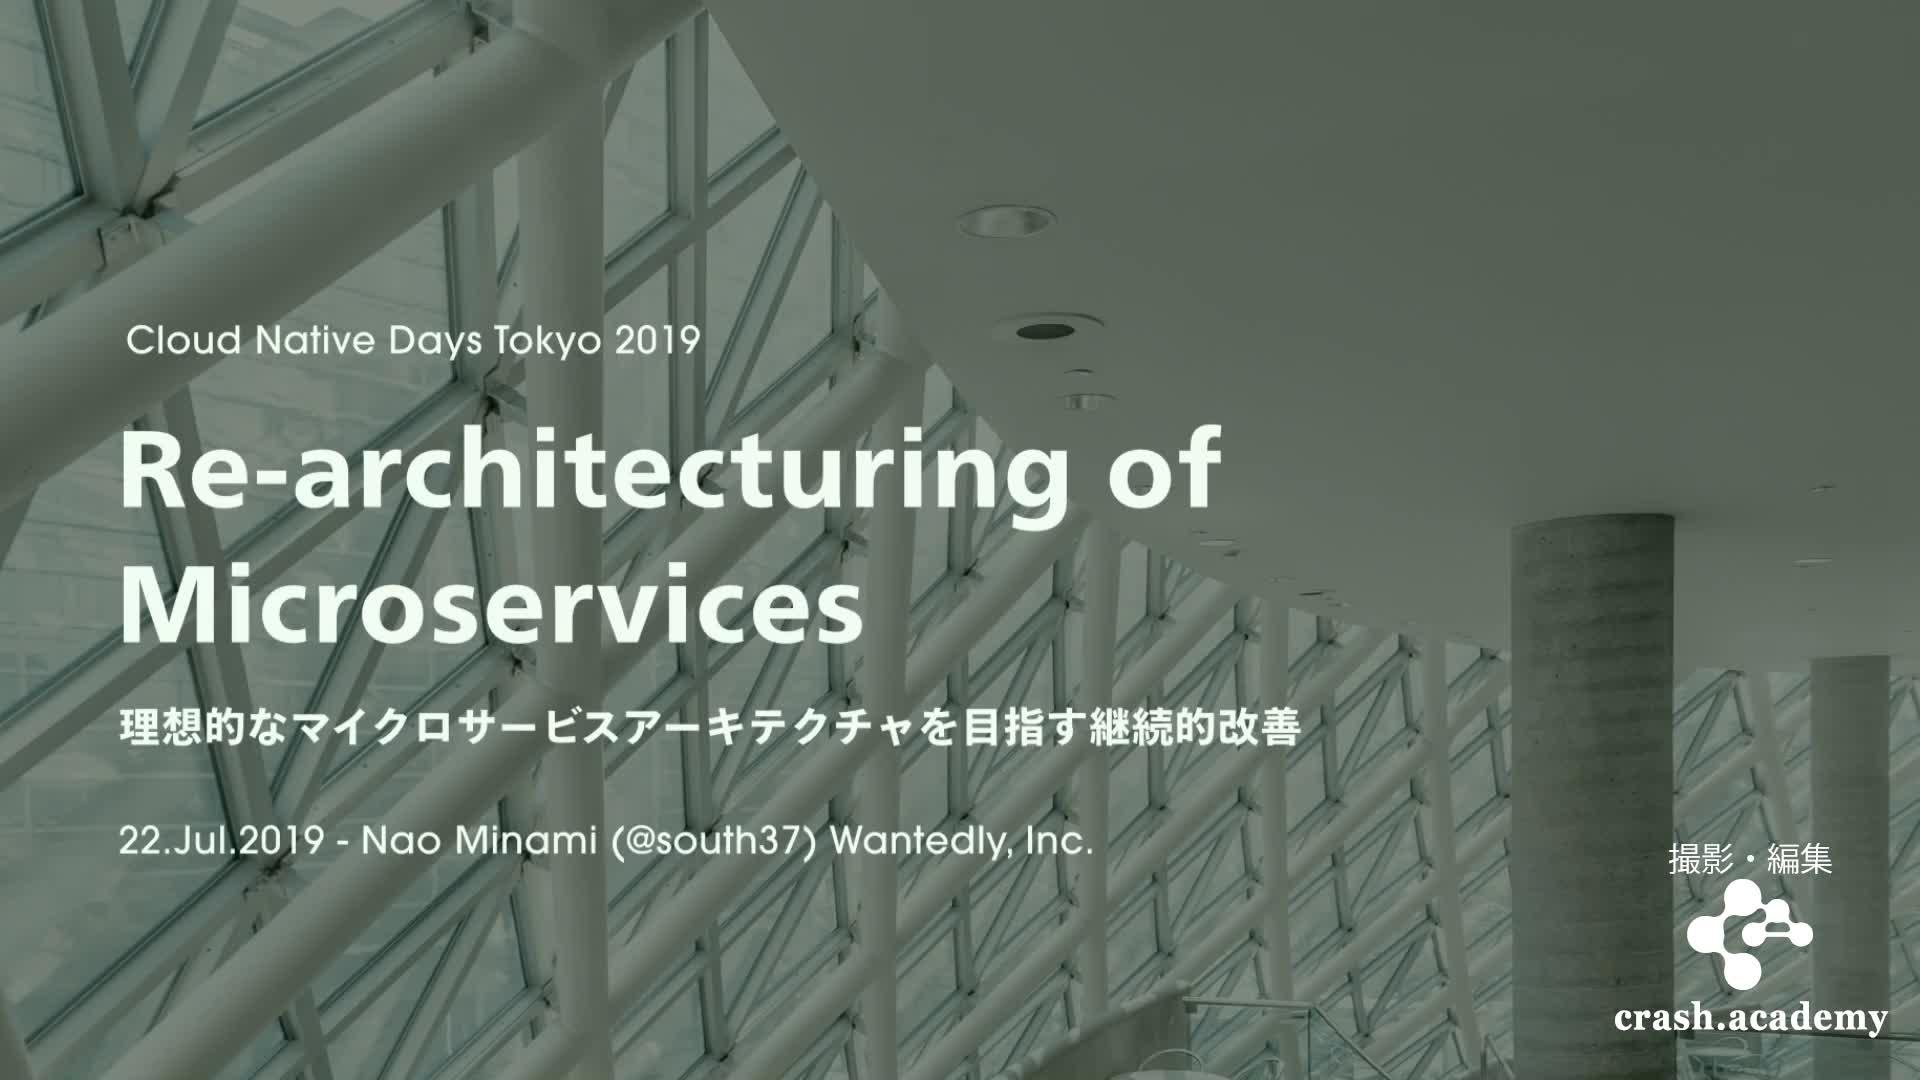 Re-architecturing of Microservices